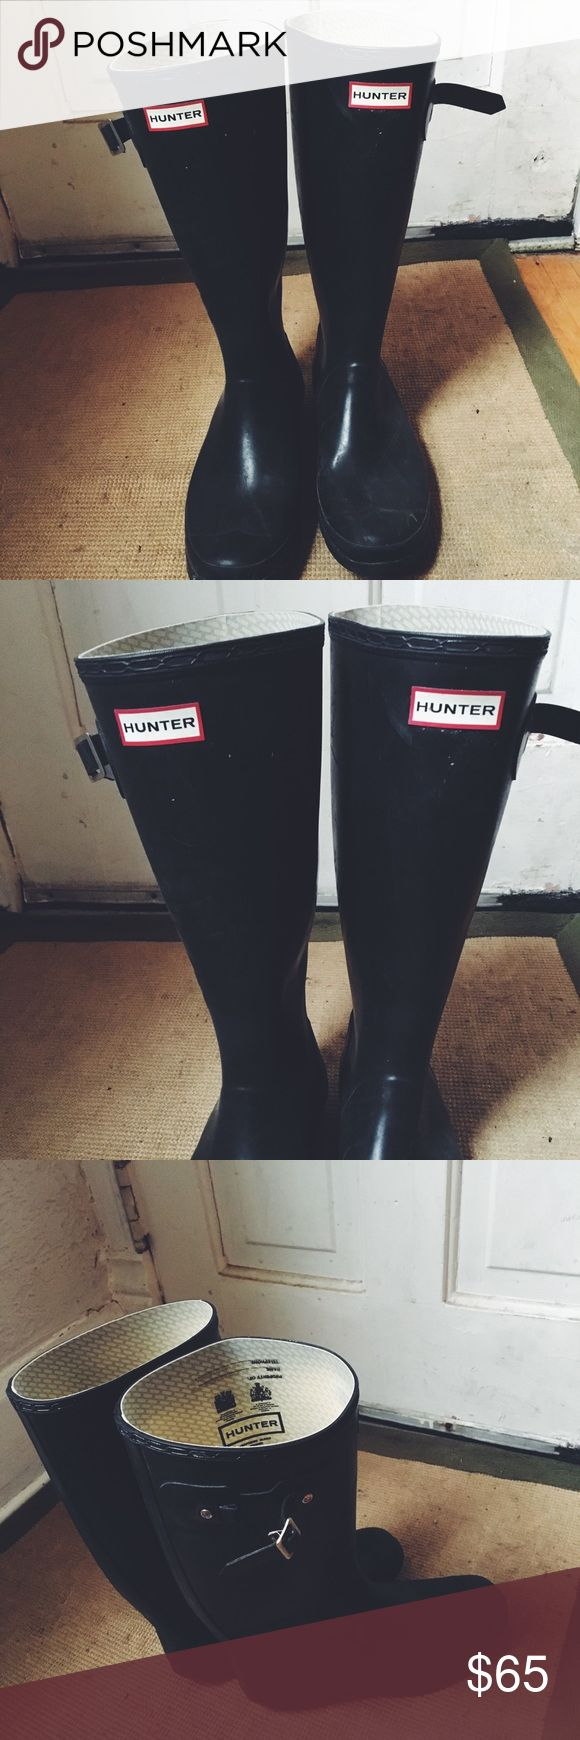 Black Tall Hunter Rain Boots! These were my favorite shoes! A great classic boot! They are durable and cute! They have been worn quite a bit - but still in great condition! The straps on the side might need attention! Hunter Boots Shoes Winter & Rain Boots